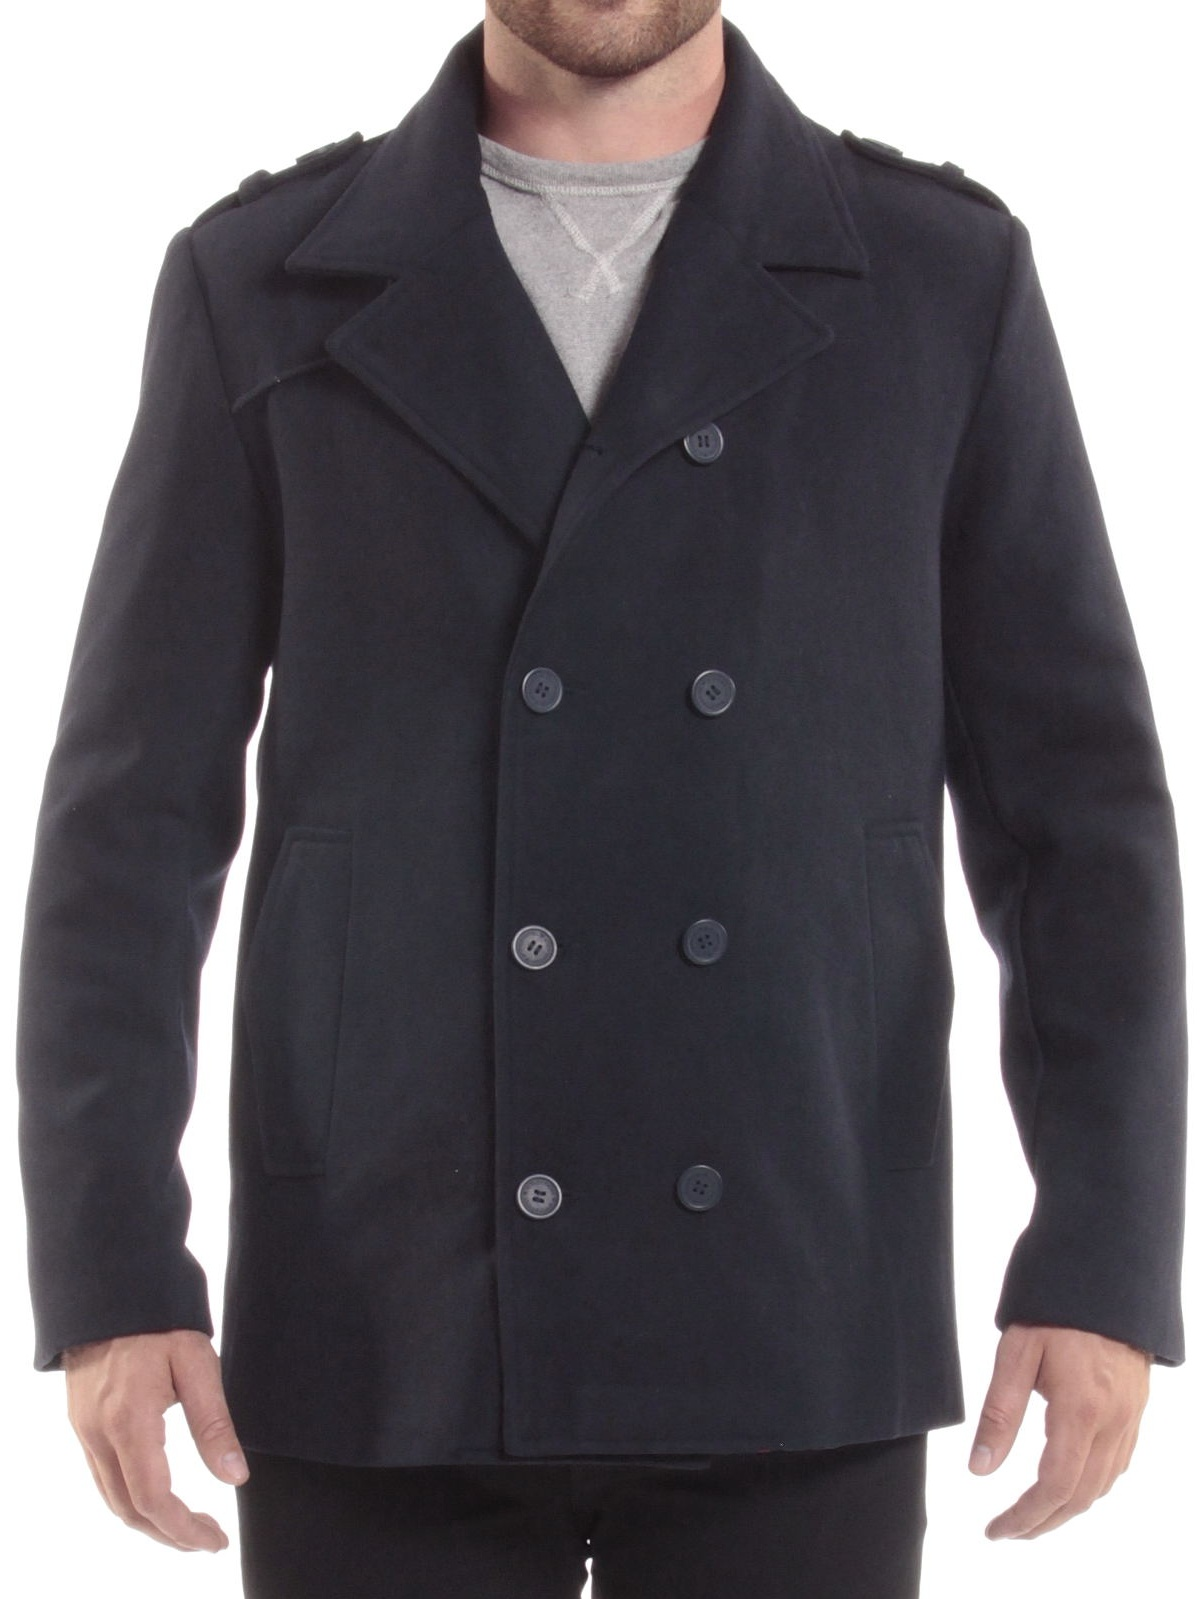 Alpine Swiss Jake Mens Pea Coat Wool Blend Double Breasted Dress Jacket Peacoat by alpine swiss